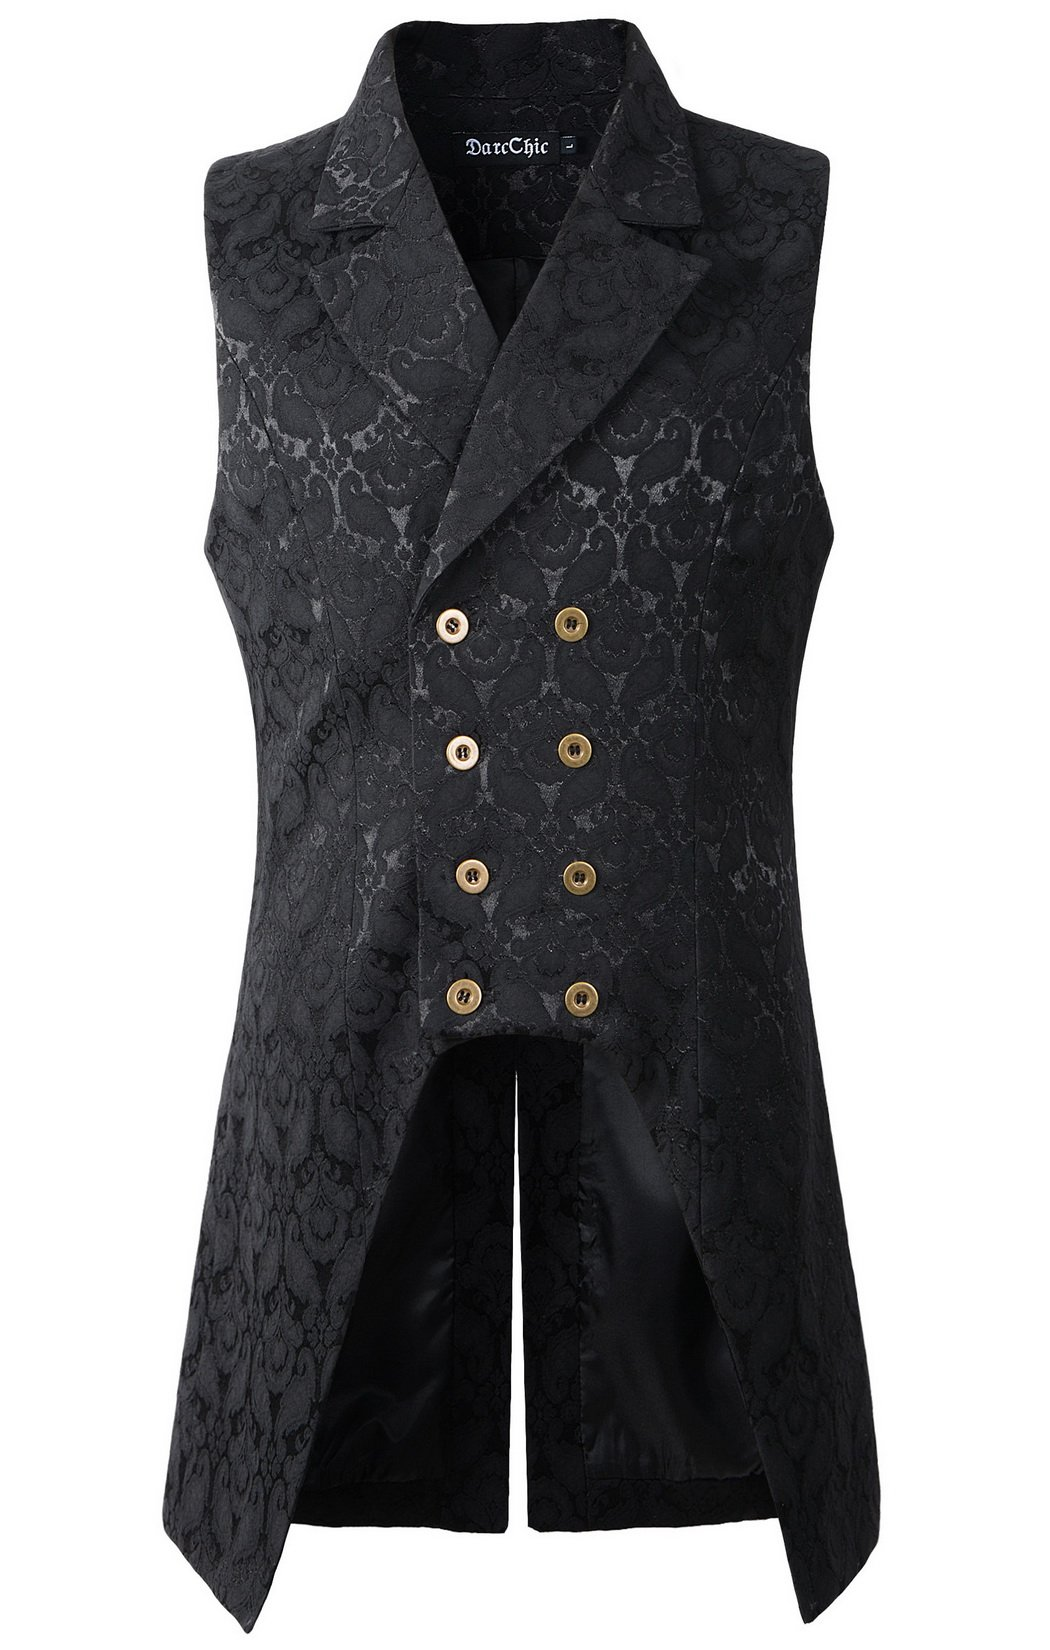 DarcChic Mens Double Breasted Vest Waistcoat VTG Brocade Gothic Steampunk (XL, Black) by DarcChic